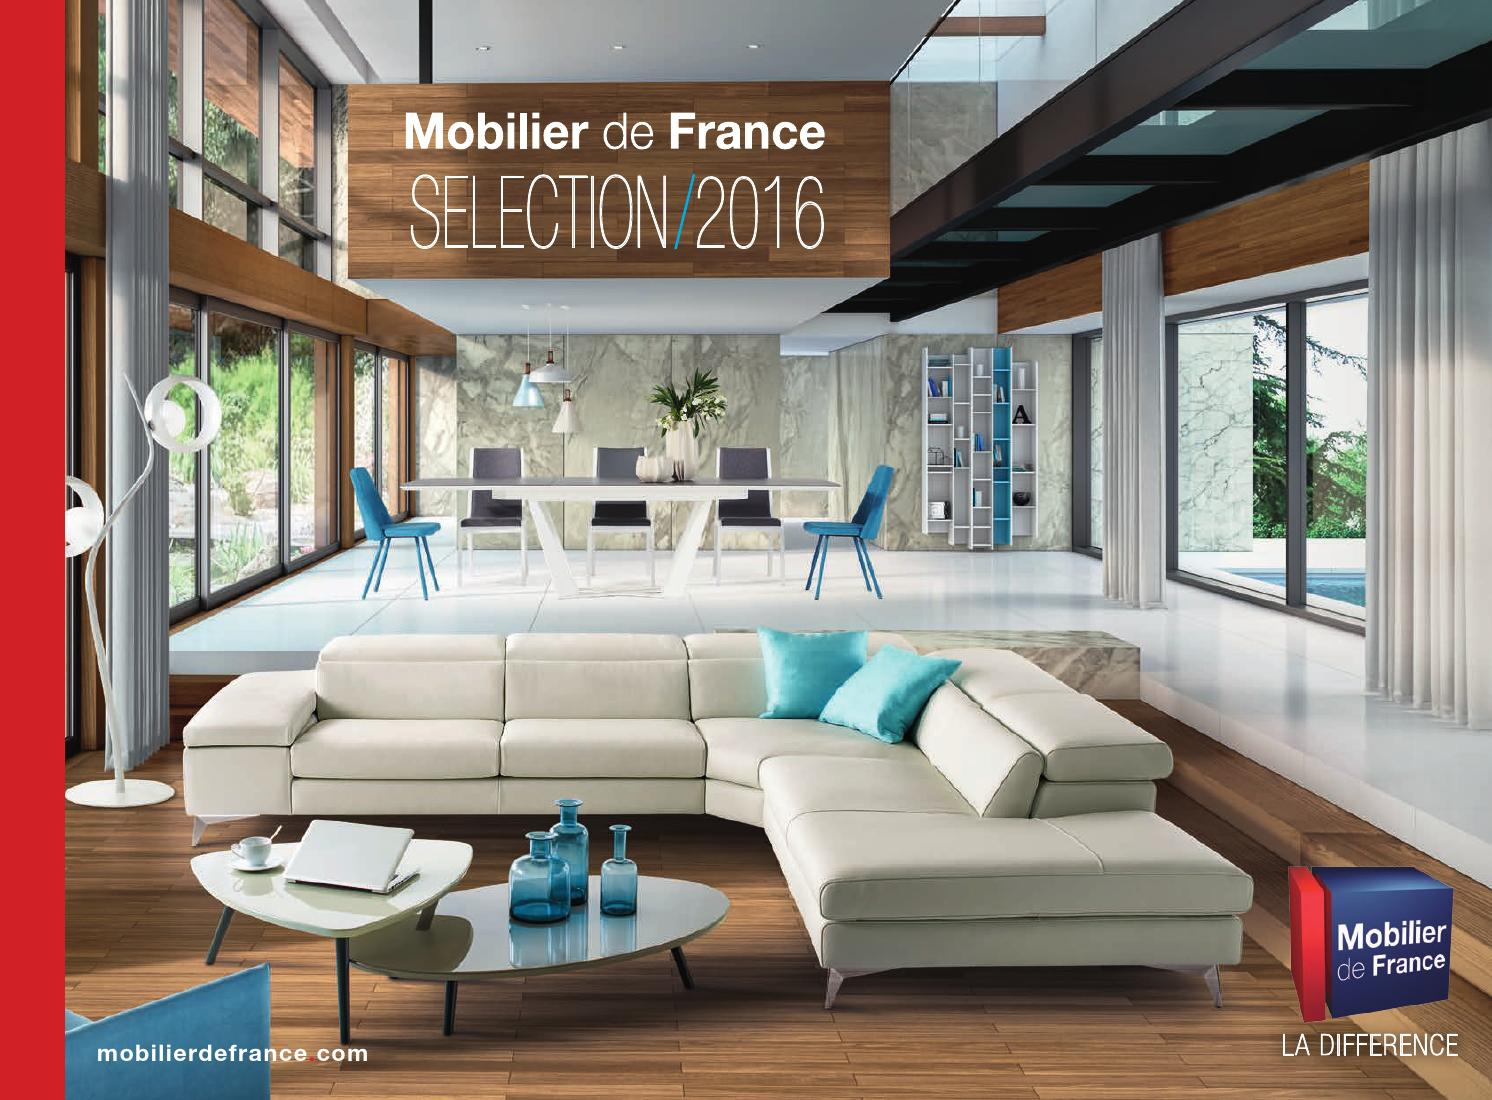 Mobilier de france catalogue 2016 by communication issuu for Mobilier de france canape d angle